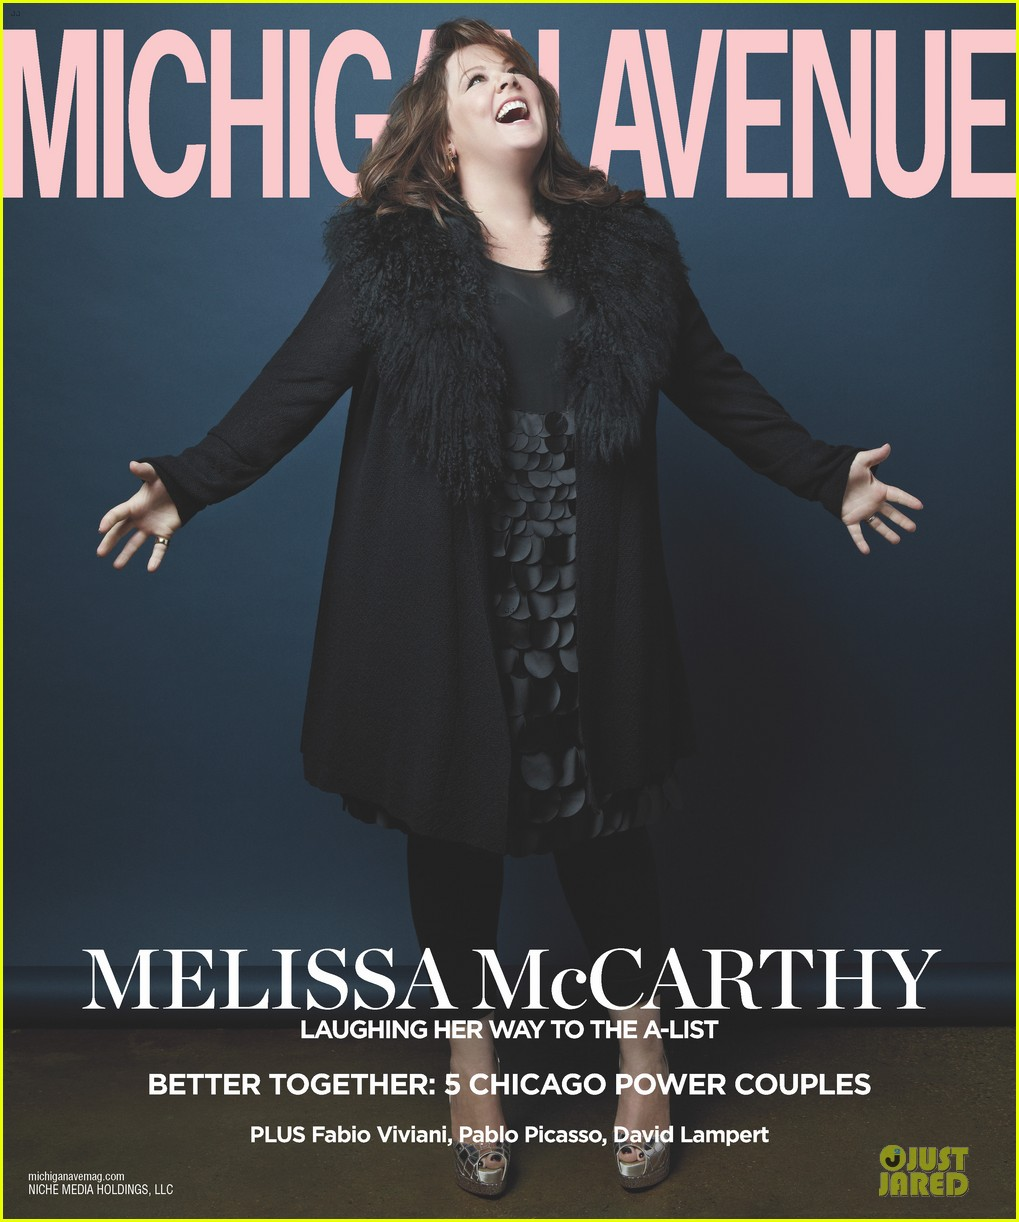 melissa mccarthy covers michigan avenue magazine winter 2013 02